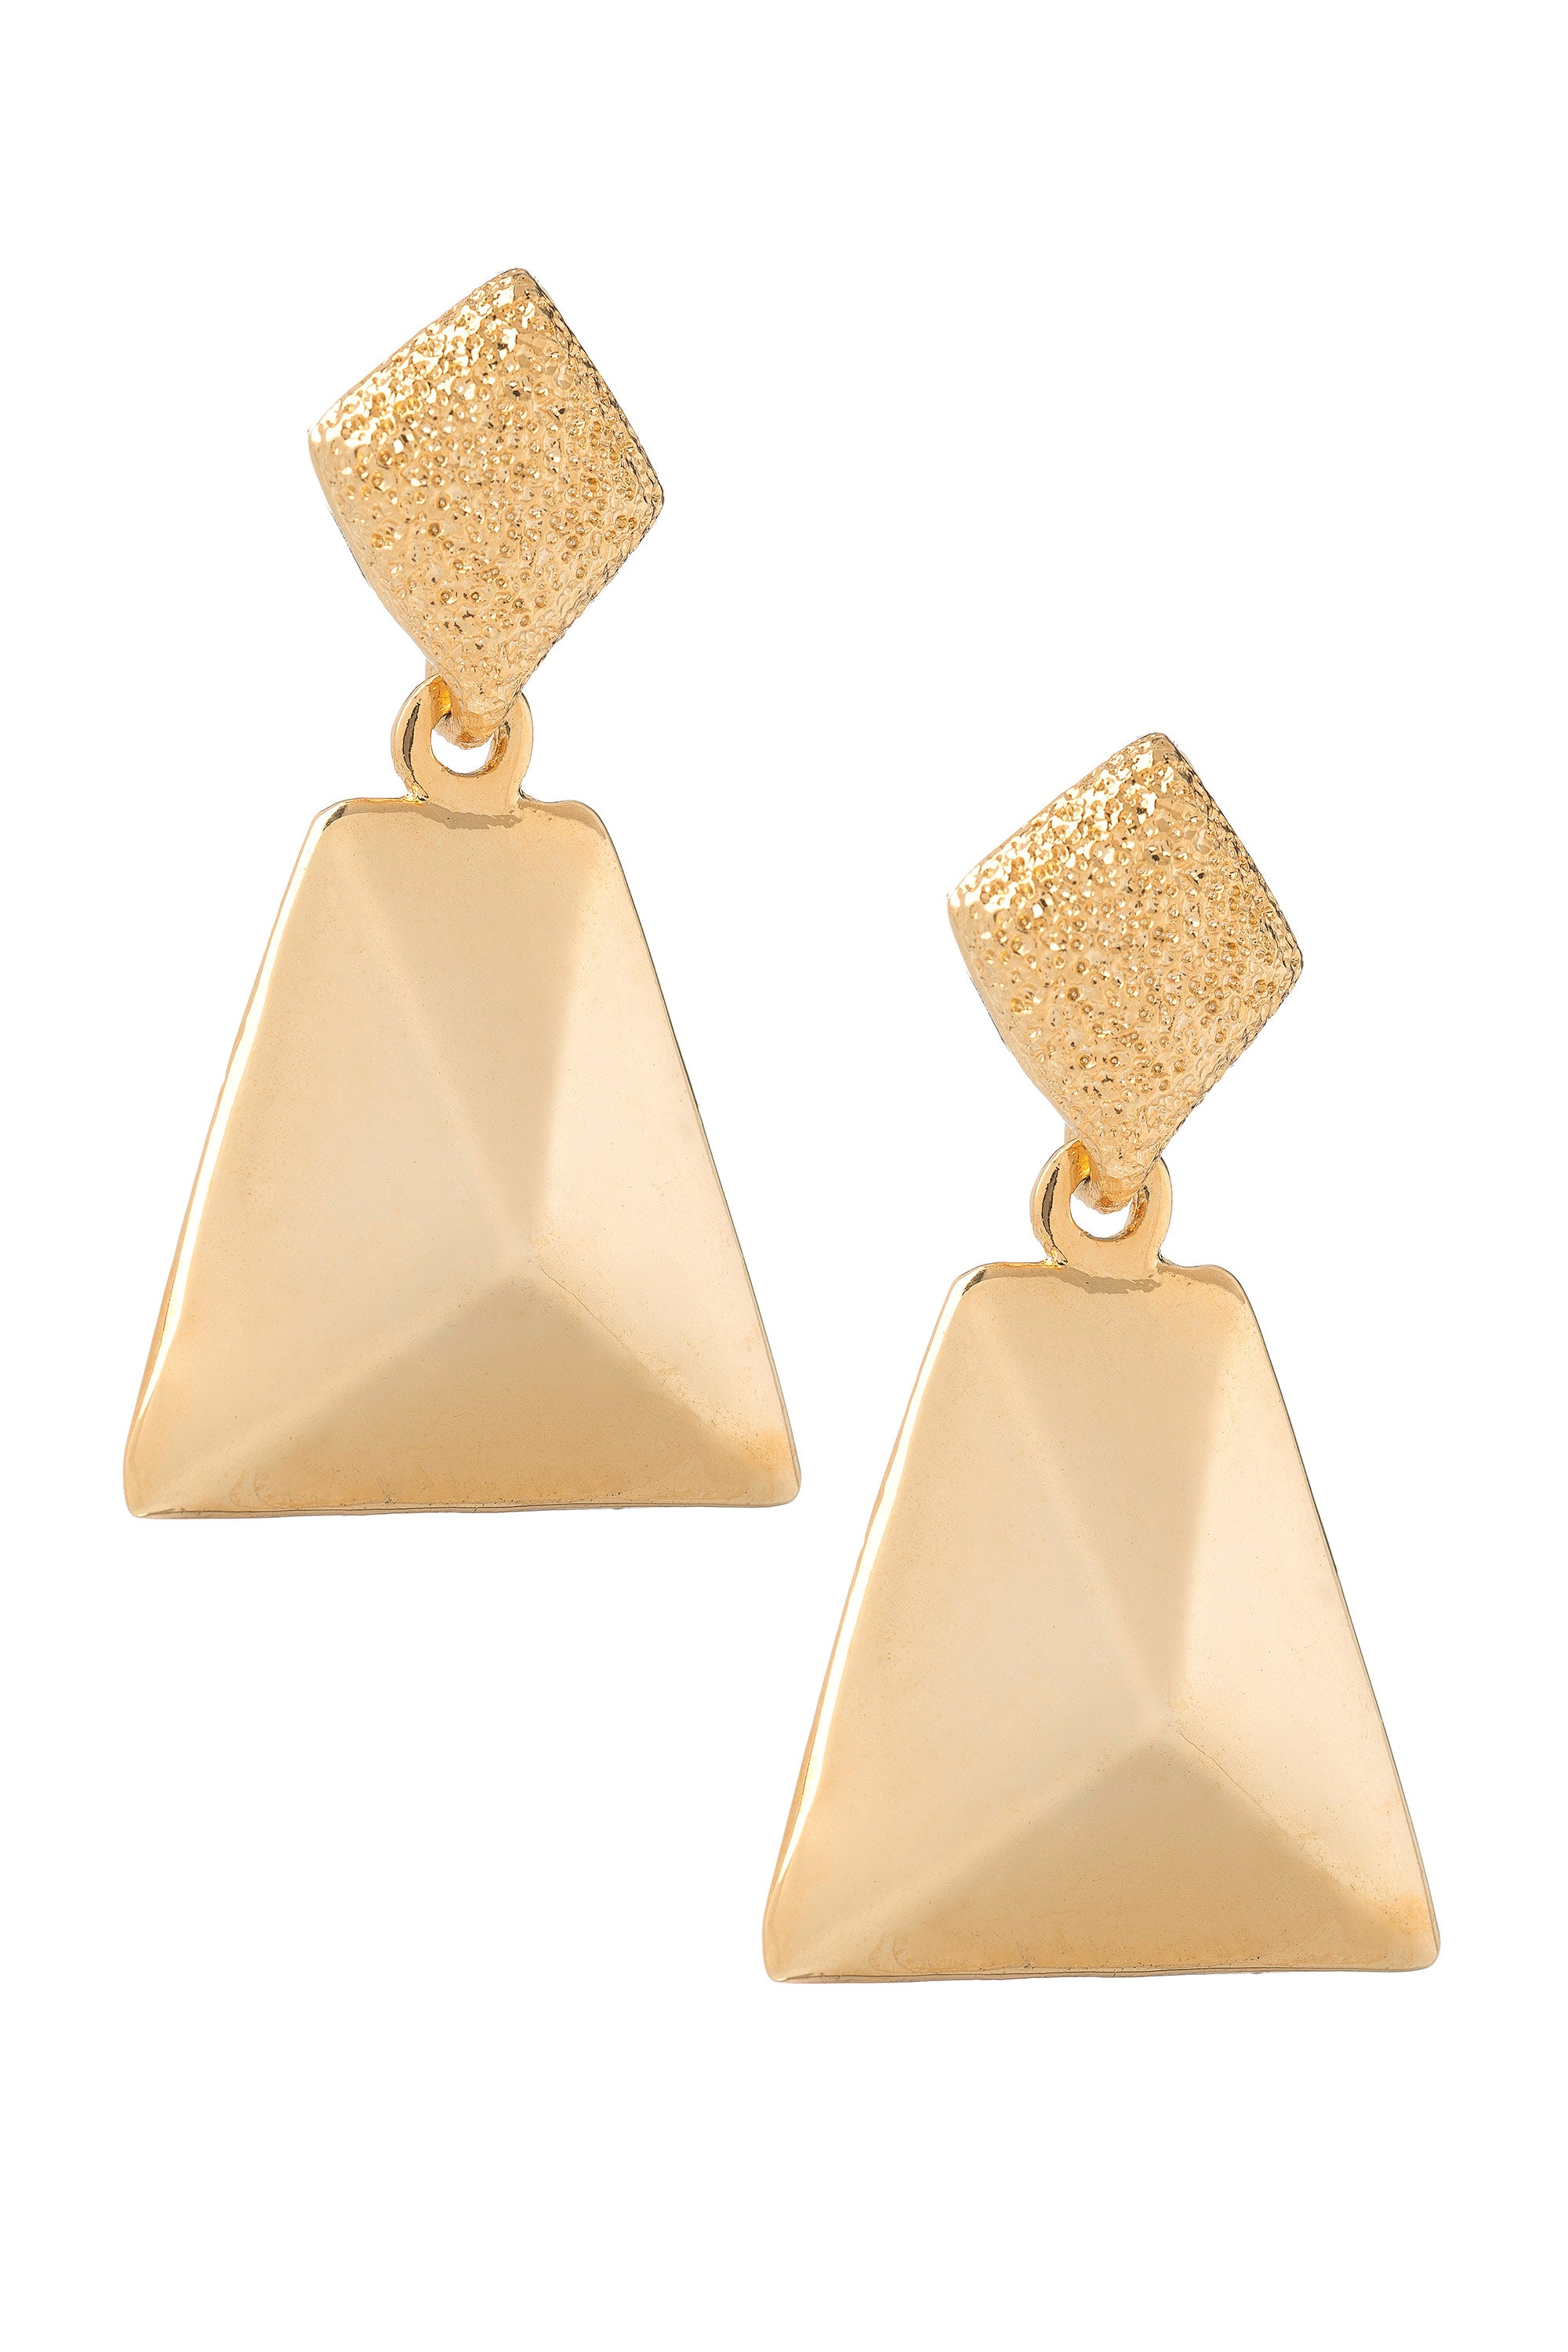 Type 3 Powerful Prism Earrings